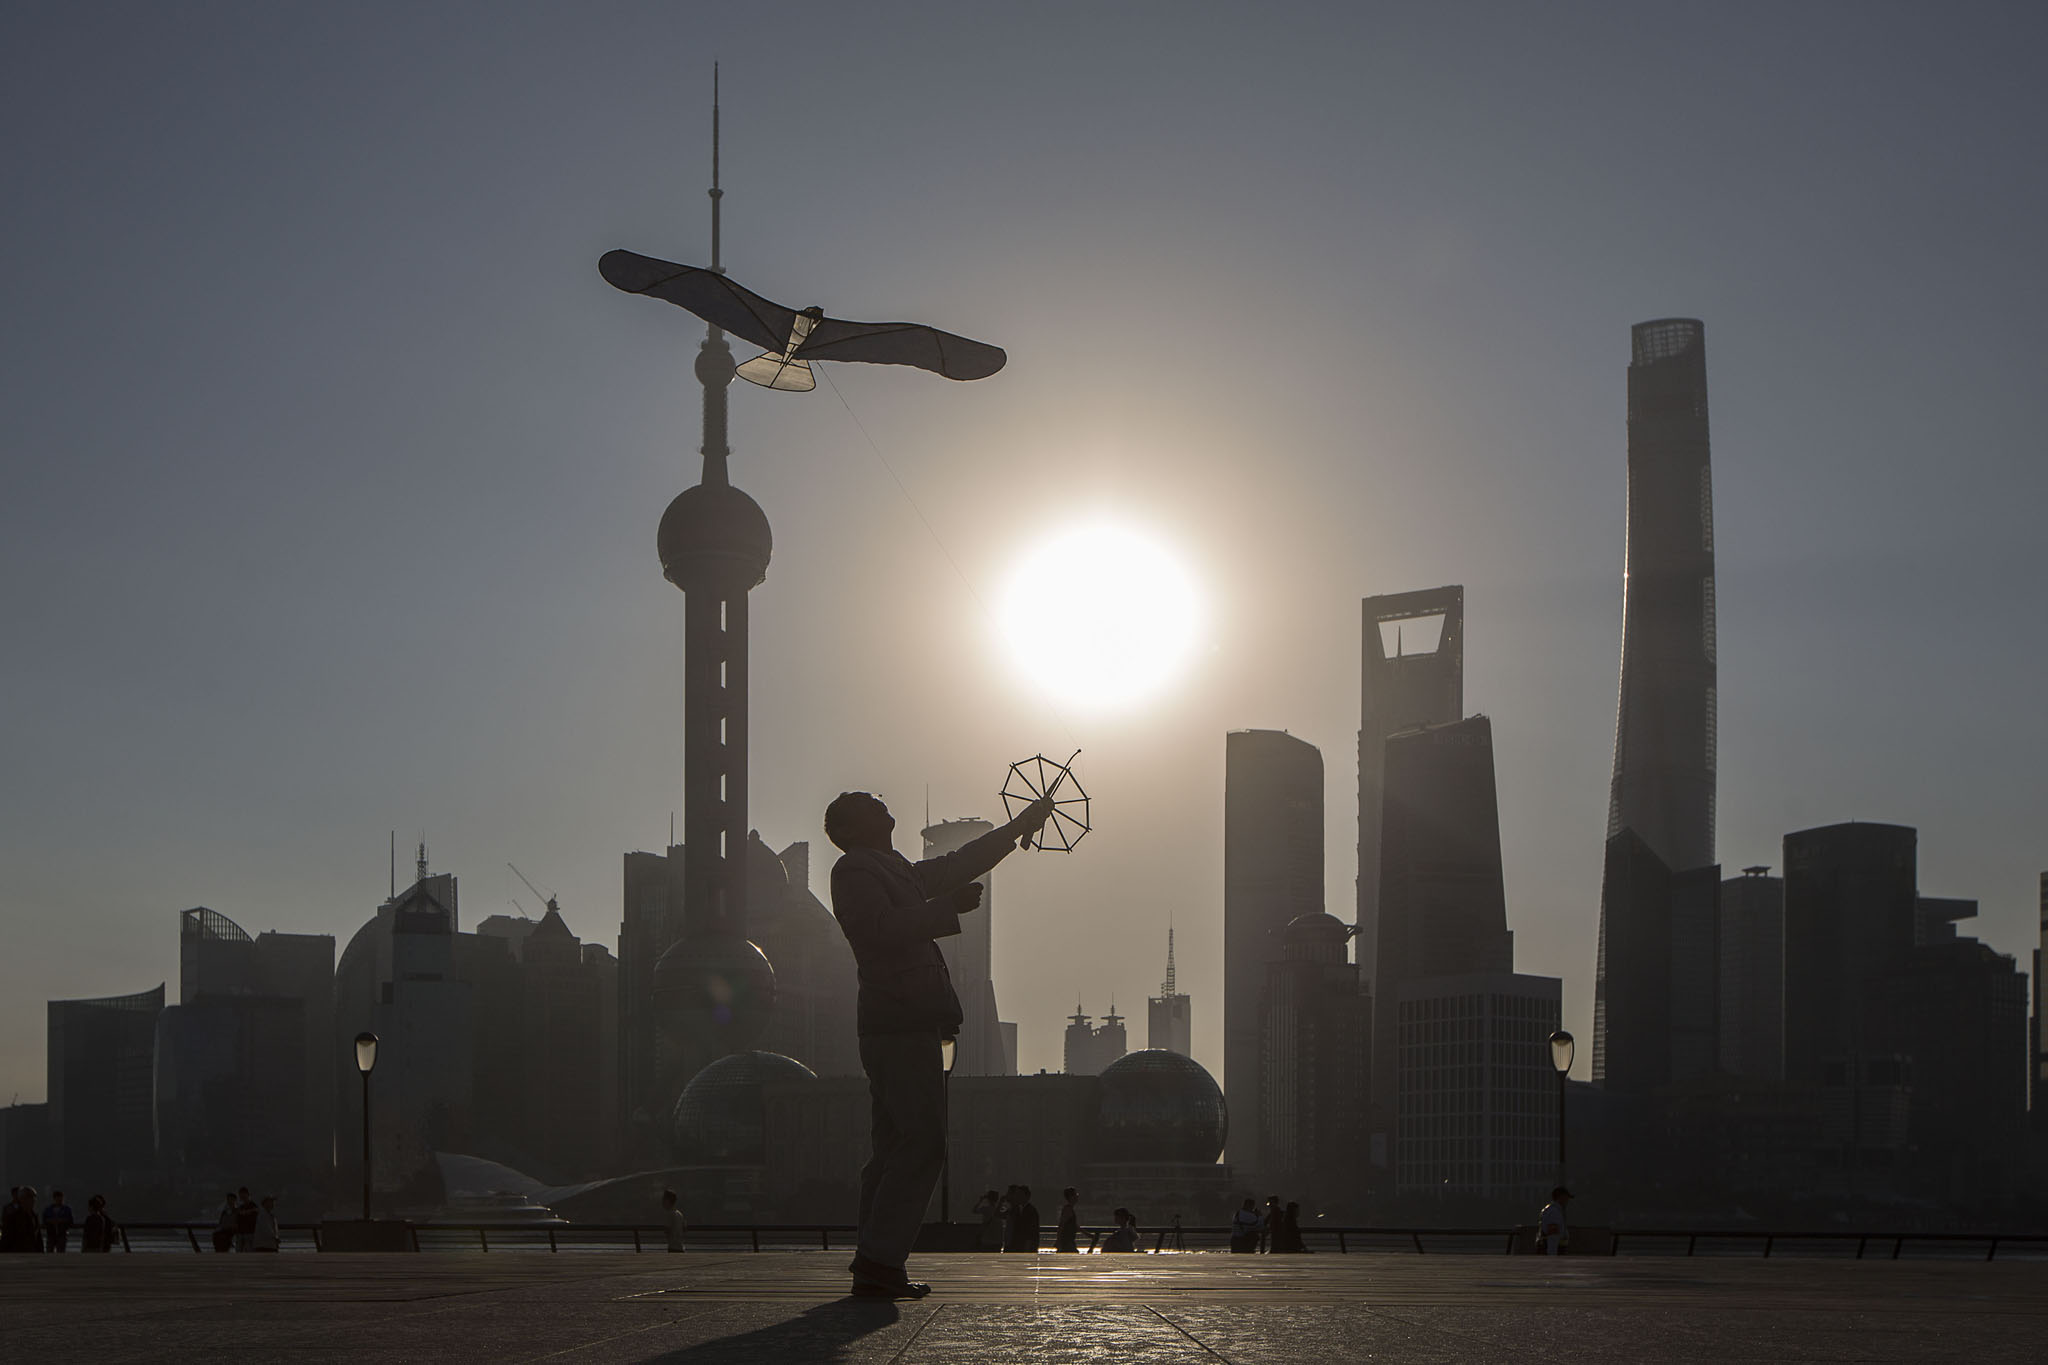 A man flies a kite on the Bund while buildings of Pudong's Lujiazui financial district stand across the Huangpu River as the sun rises in Shanghai, China